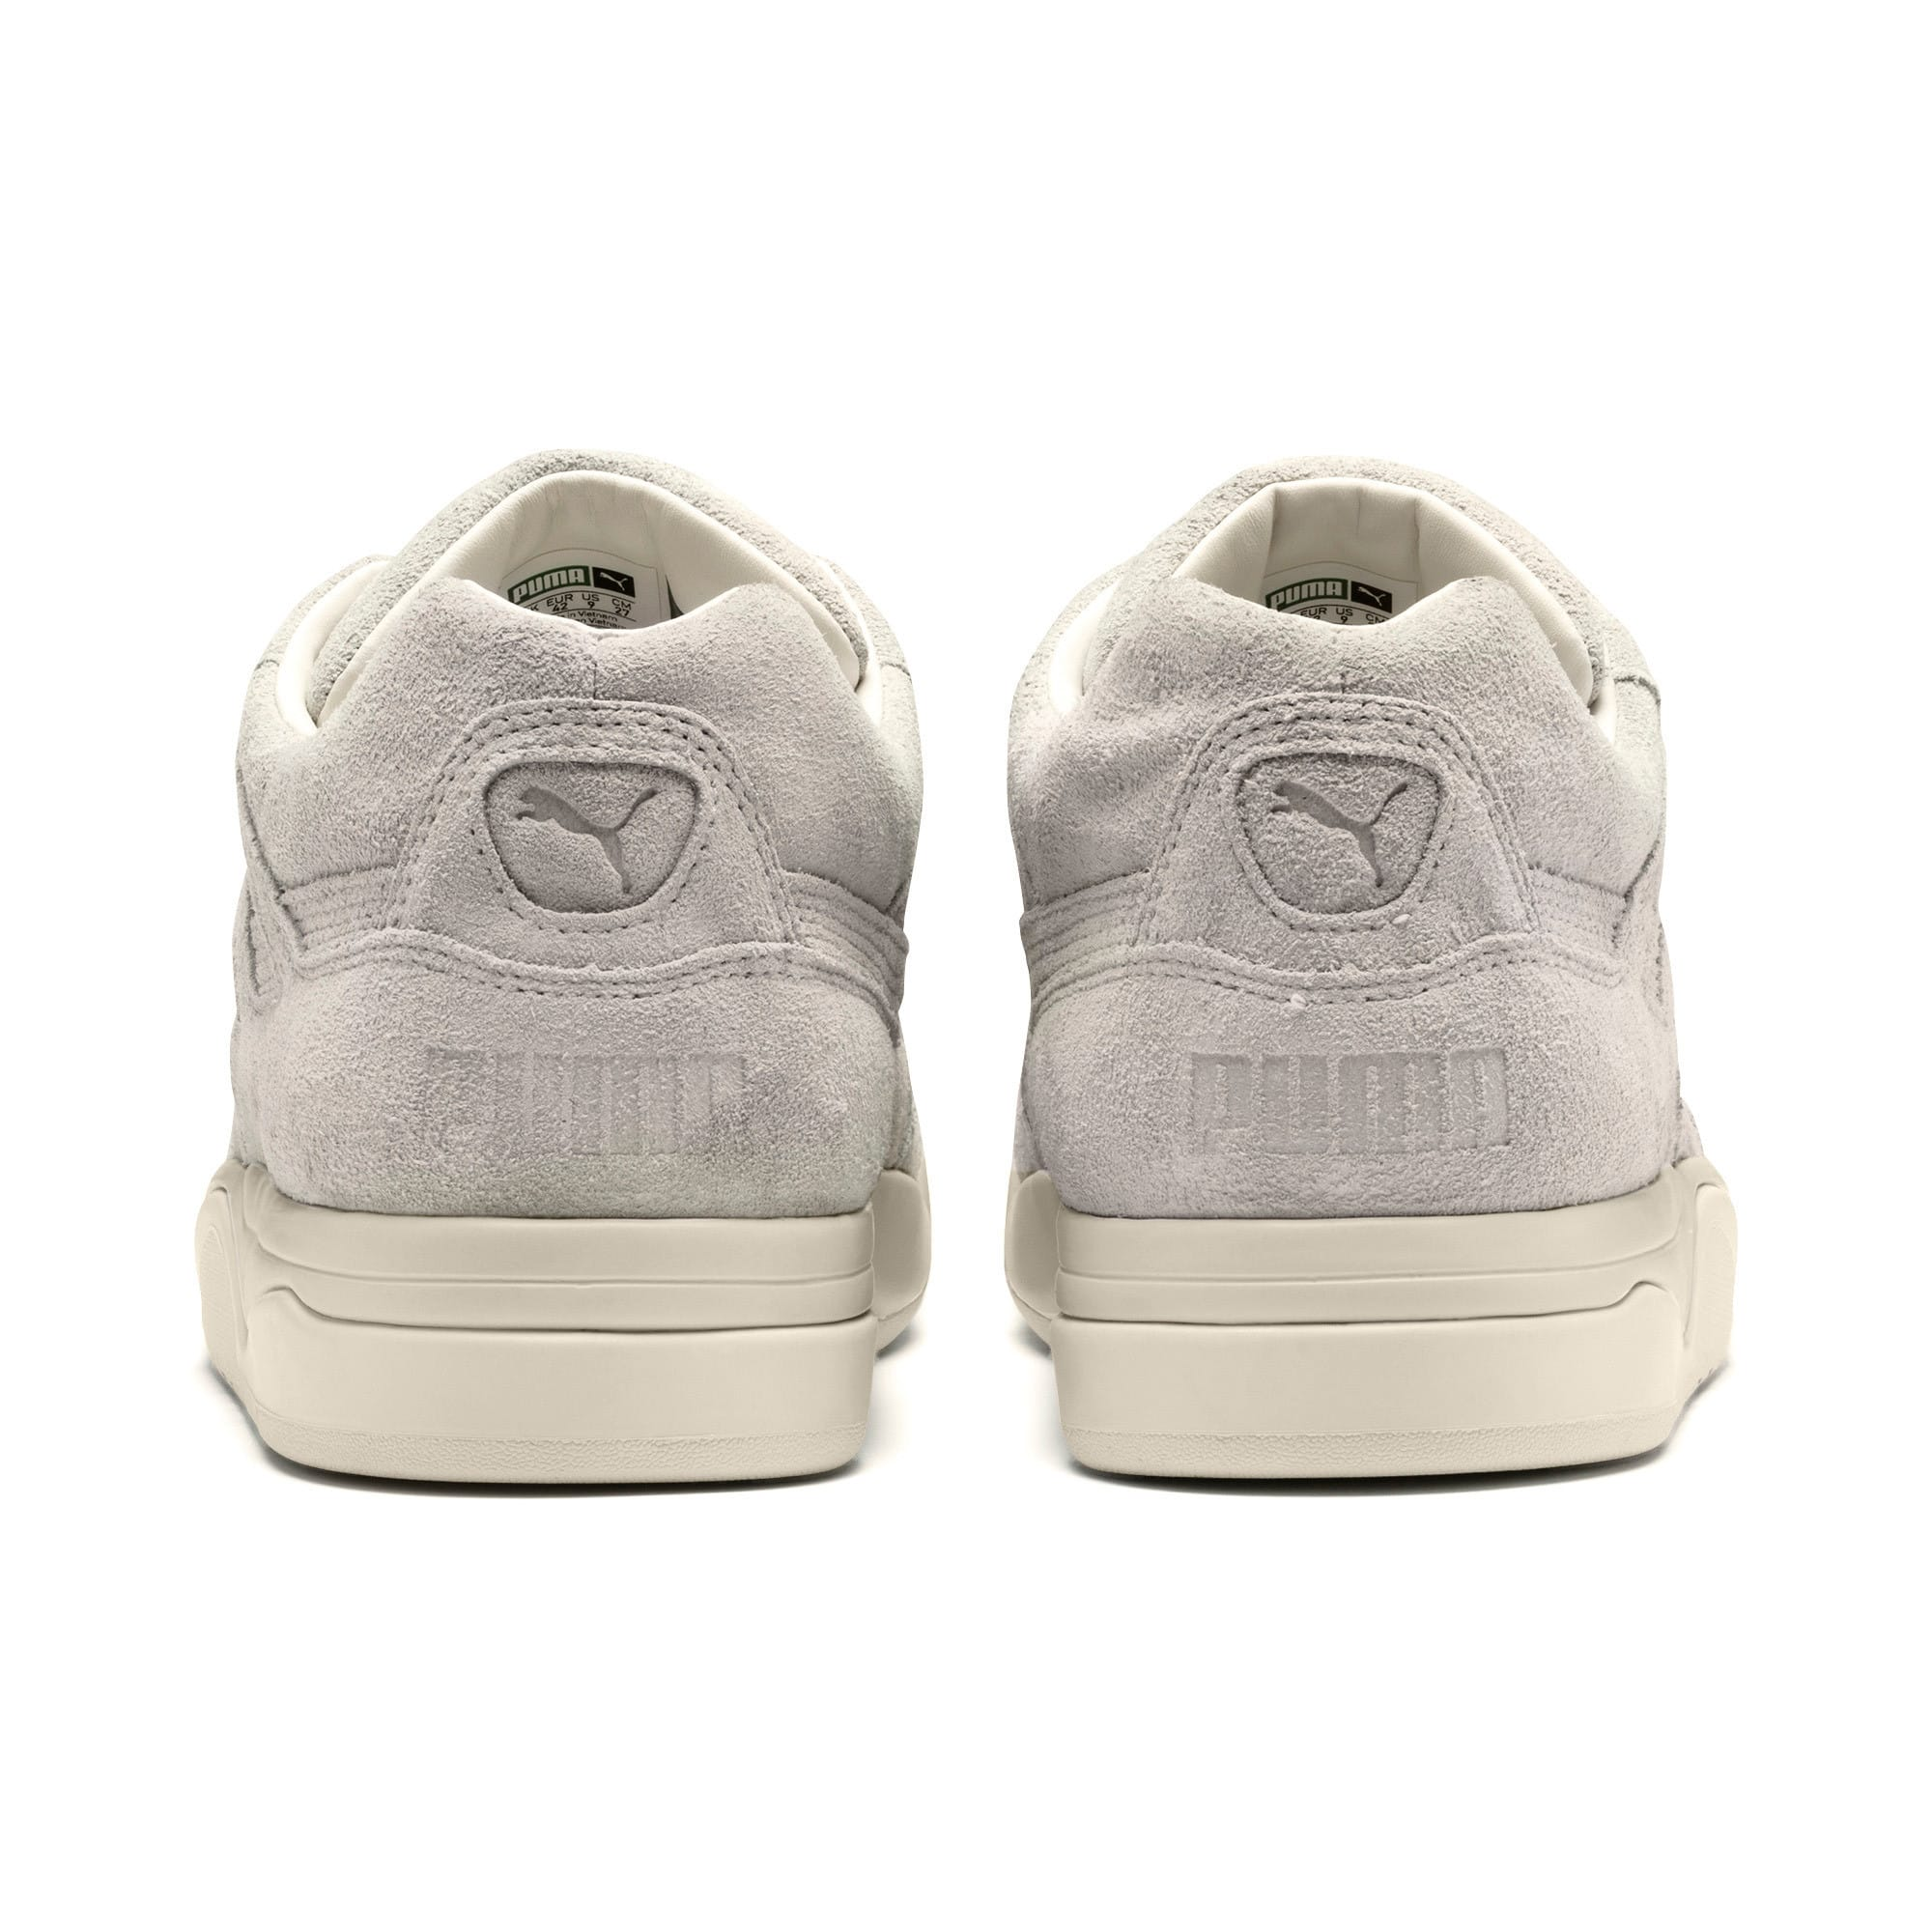 Thumbnail 5 of Palace Guard 4th of July Trainers, Whisper White-Puma Black, medium-IND